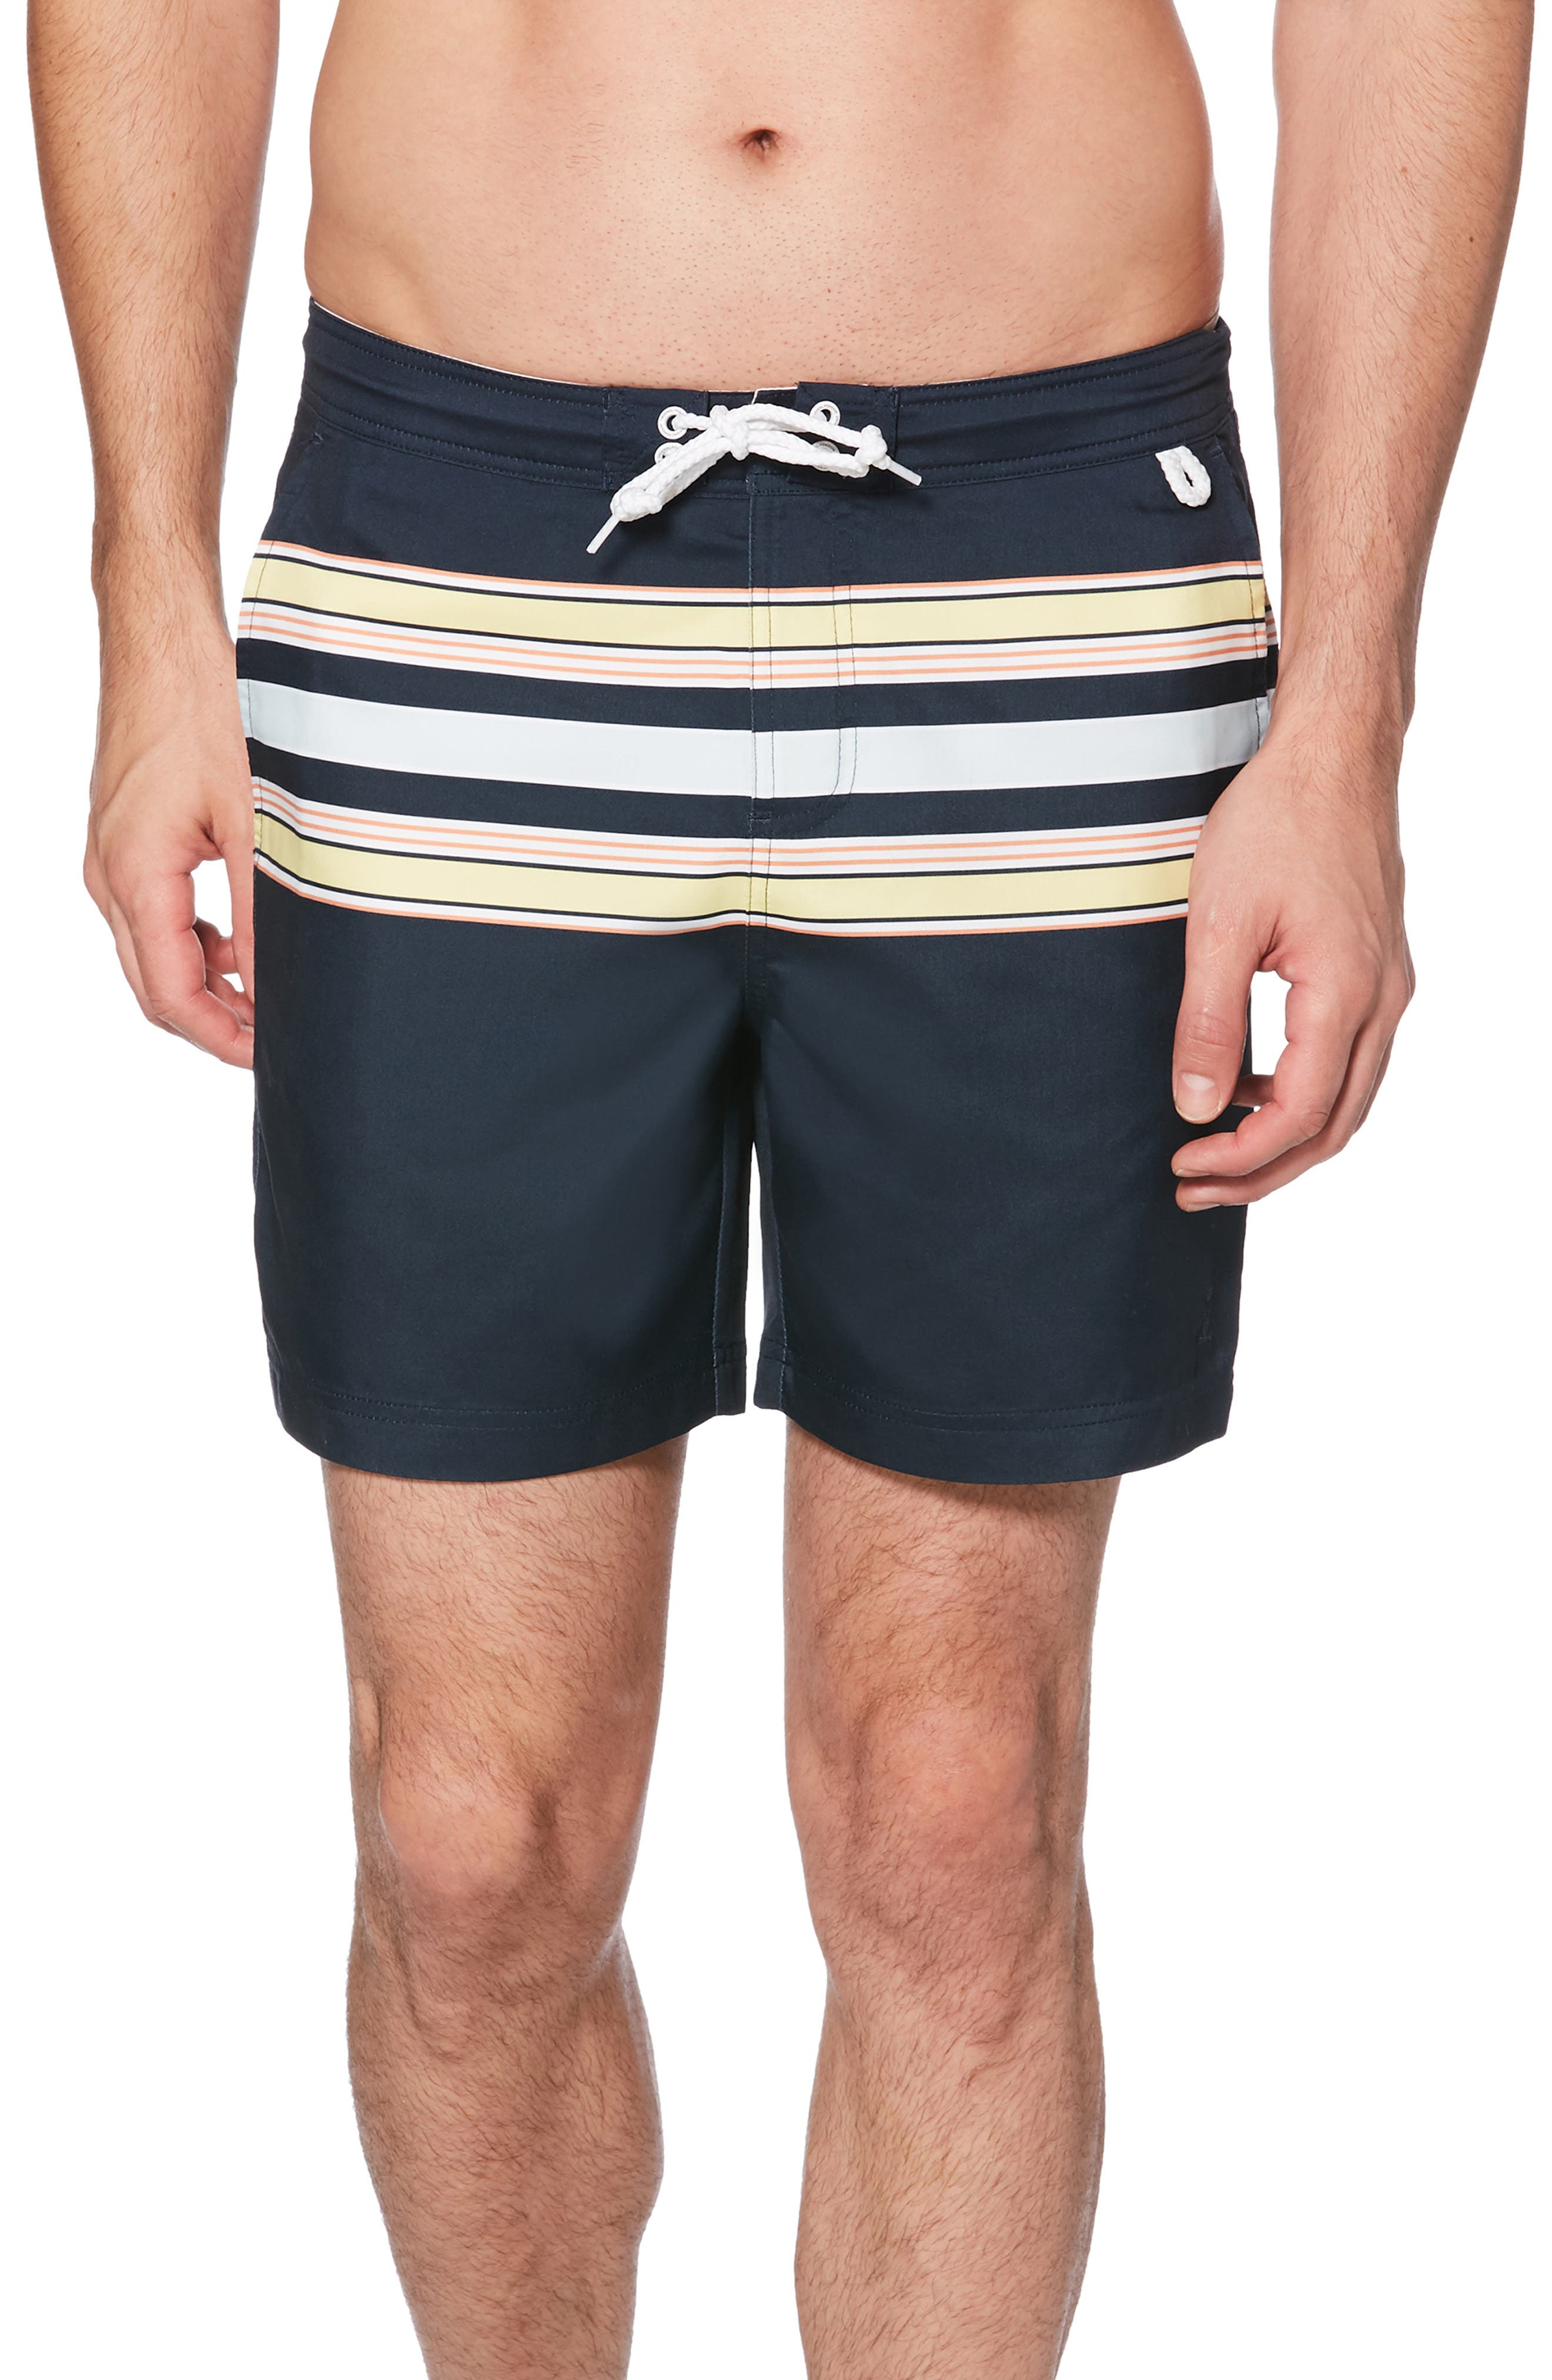 ORIGINAL PENGUIN Retro Stripe Swim Trunks, Main, color, DARK SAPPHIRE